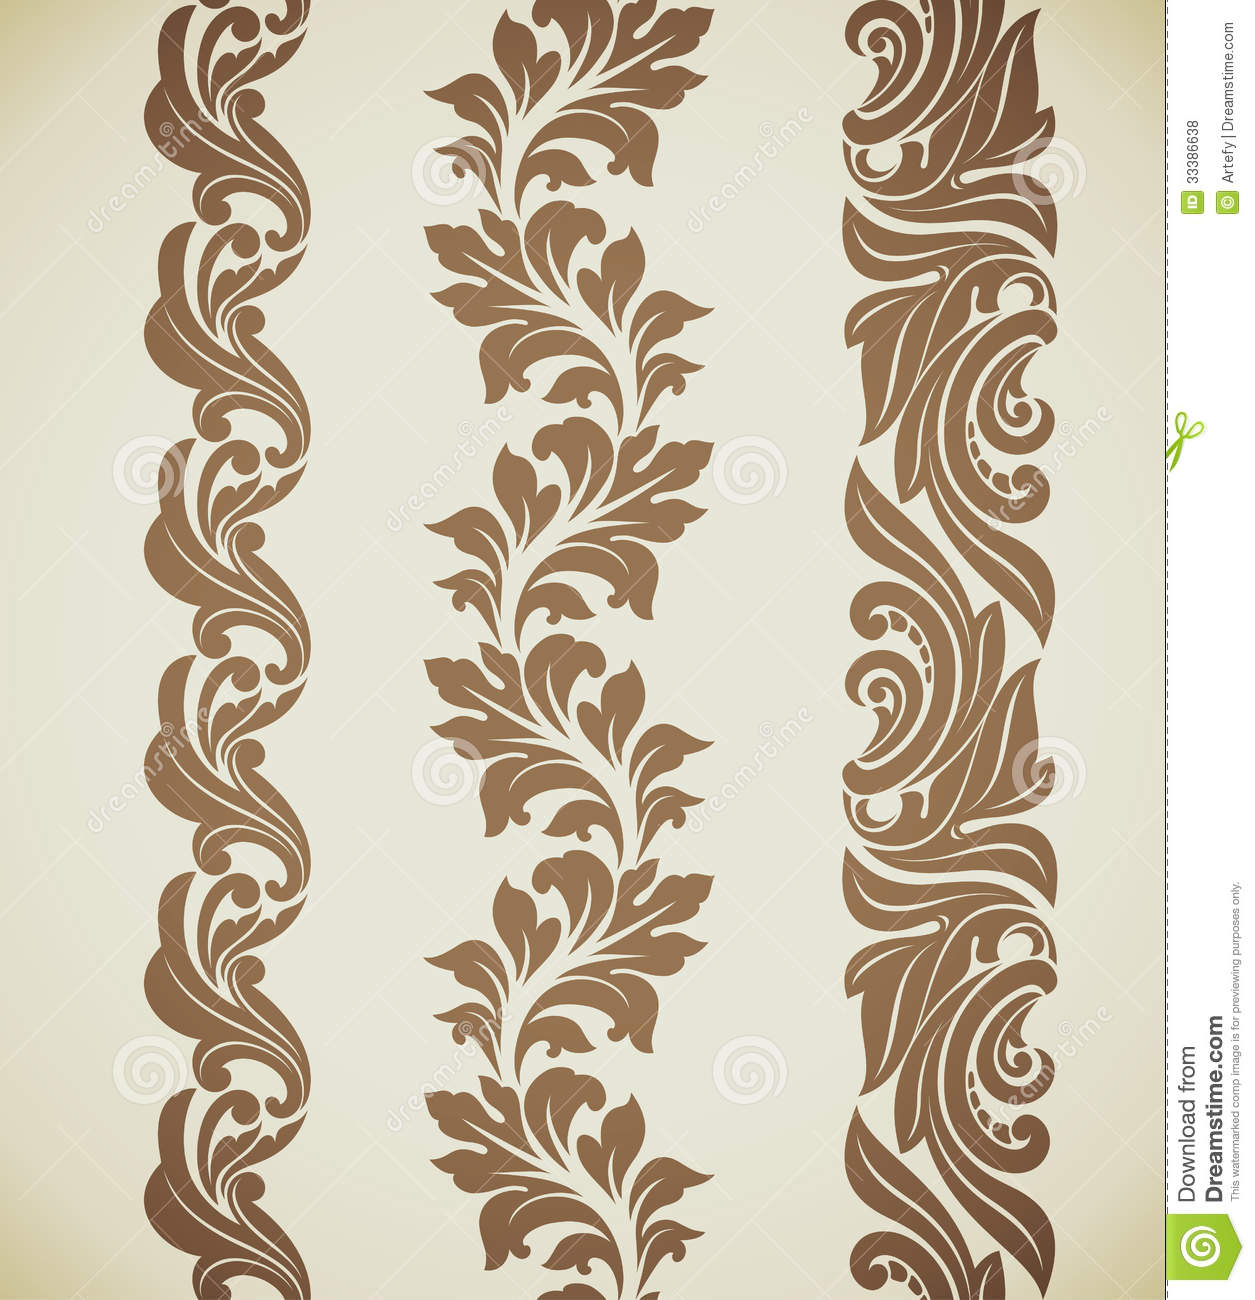 Baroque patterns royalty free stock photos image 33386638 for Baroque design clothes